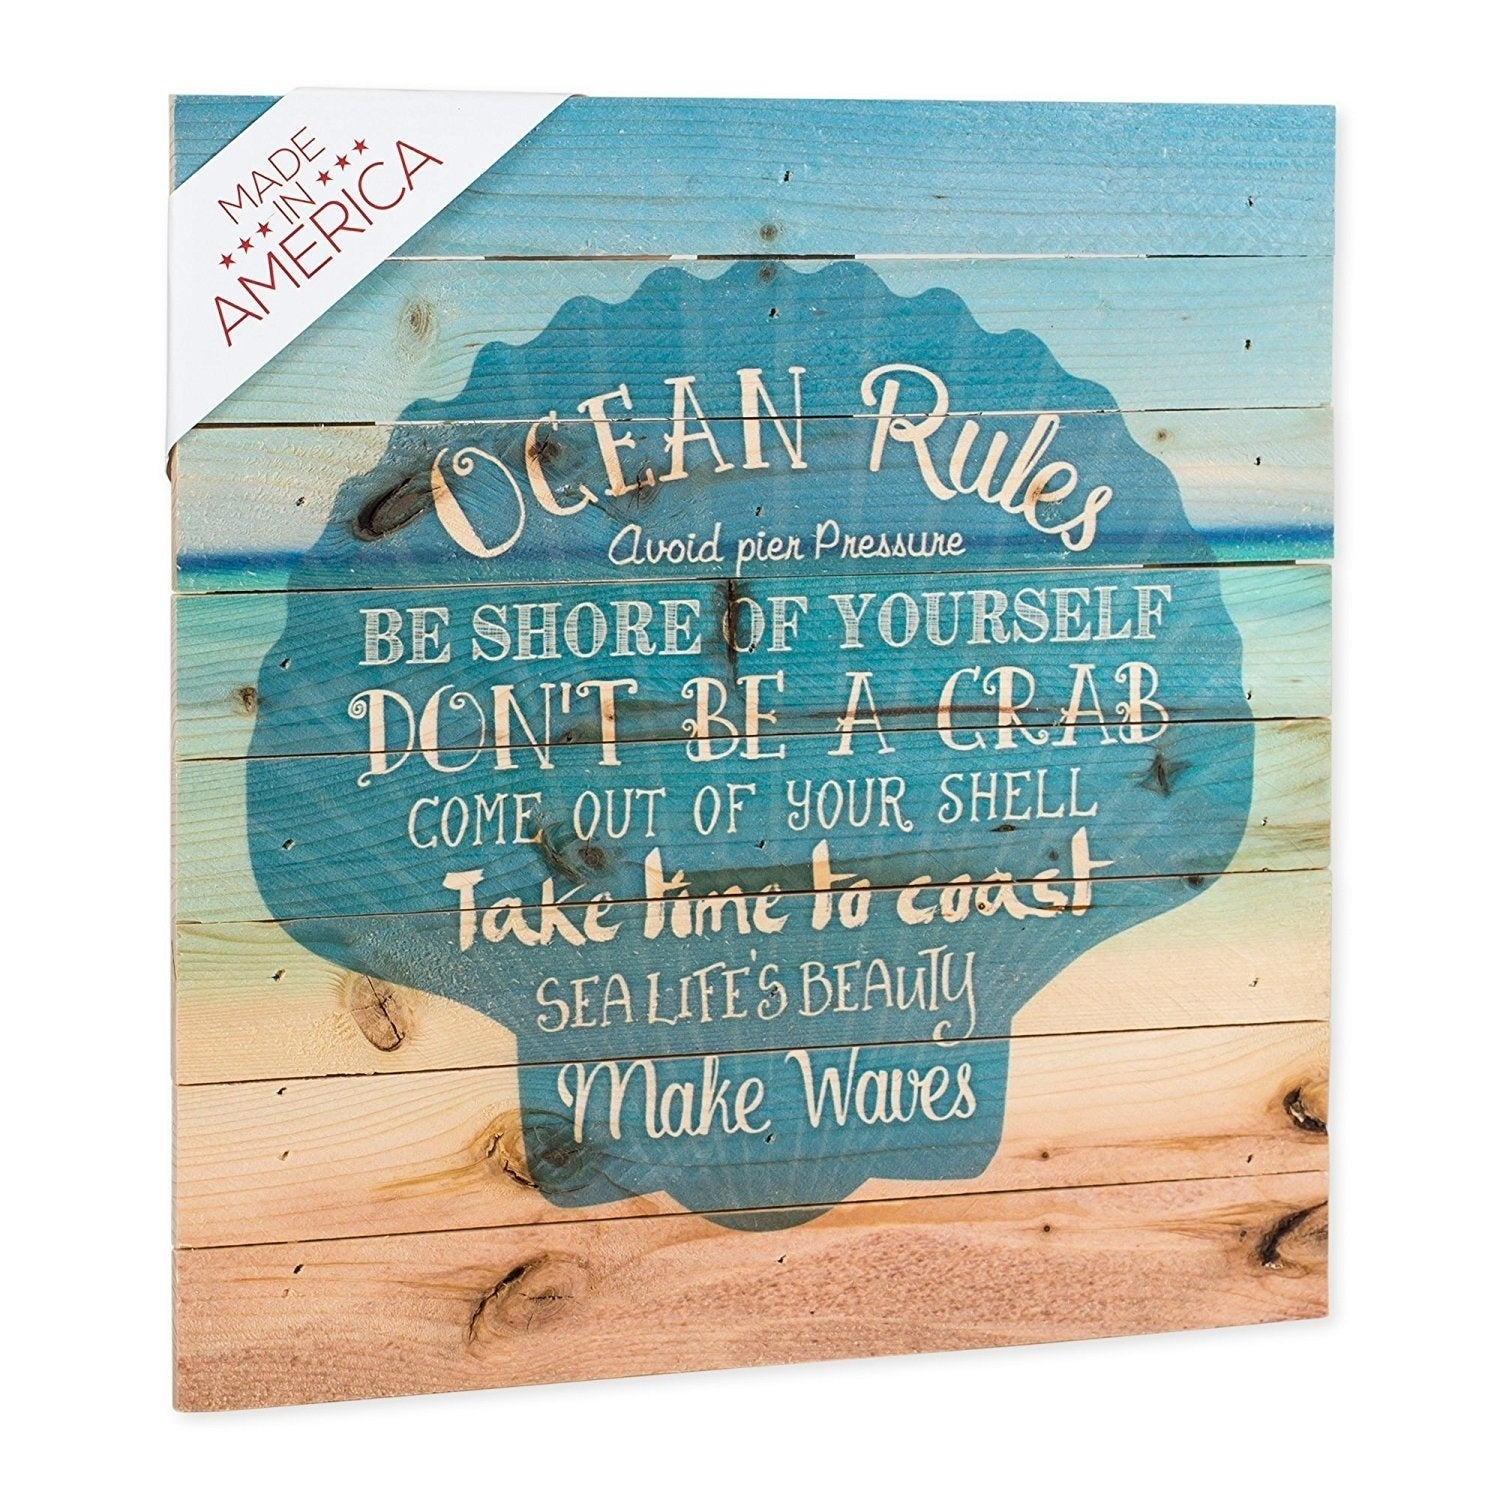 Ocean rules seashell beach design 12 x 12 wood pallet design wall ocean rules seashell beach design 12 x 12 wood pallet design wall art free shipping today overstock 25793291 solutioingenieria Gallery